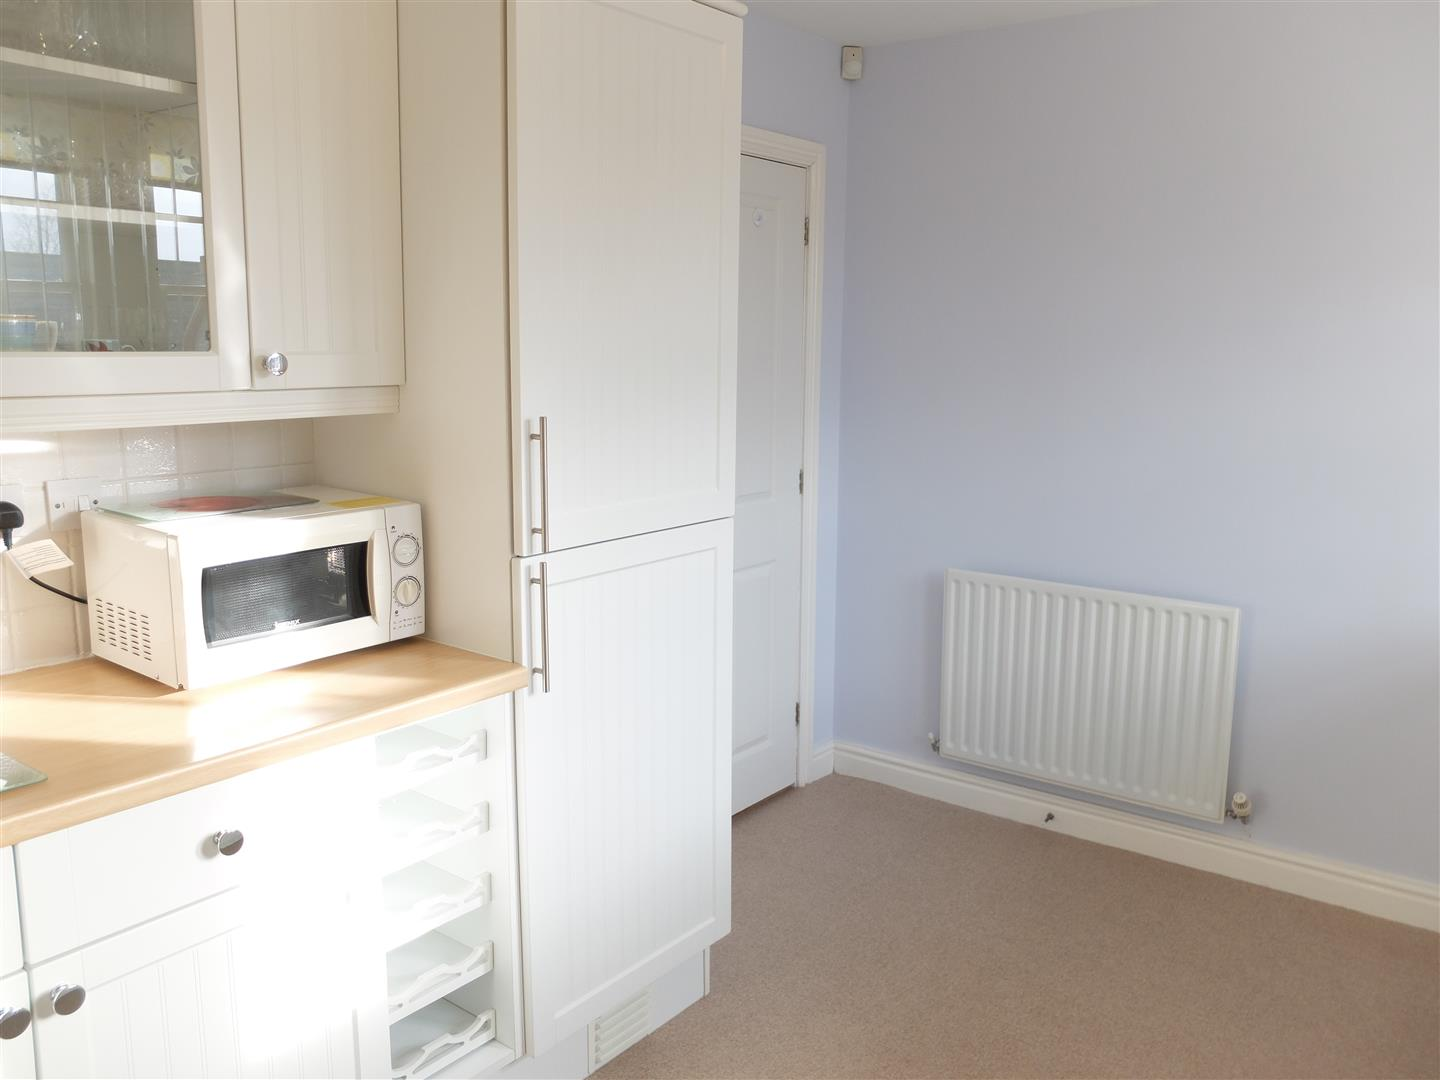 3 Bedrooms Flat On Sale 19 Cherry Lane Carlisle